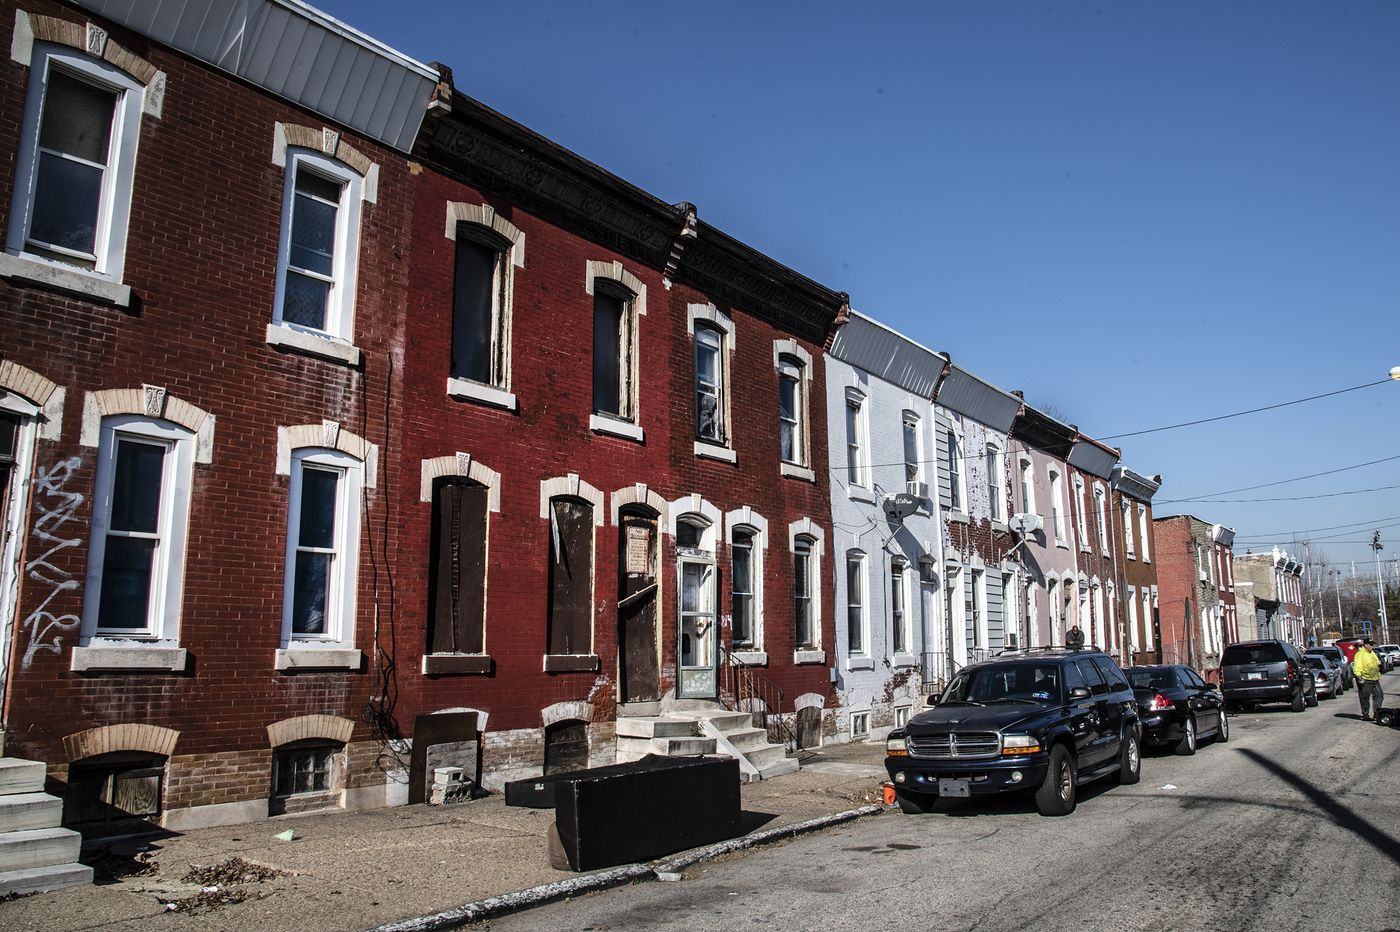 Philly's 'opportunity zone' tracts are some of the city's poorest, and among its biggest gentrifiers, Fed finds